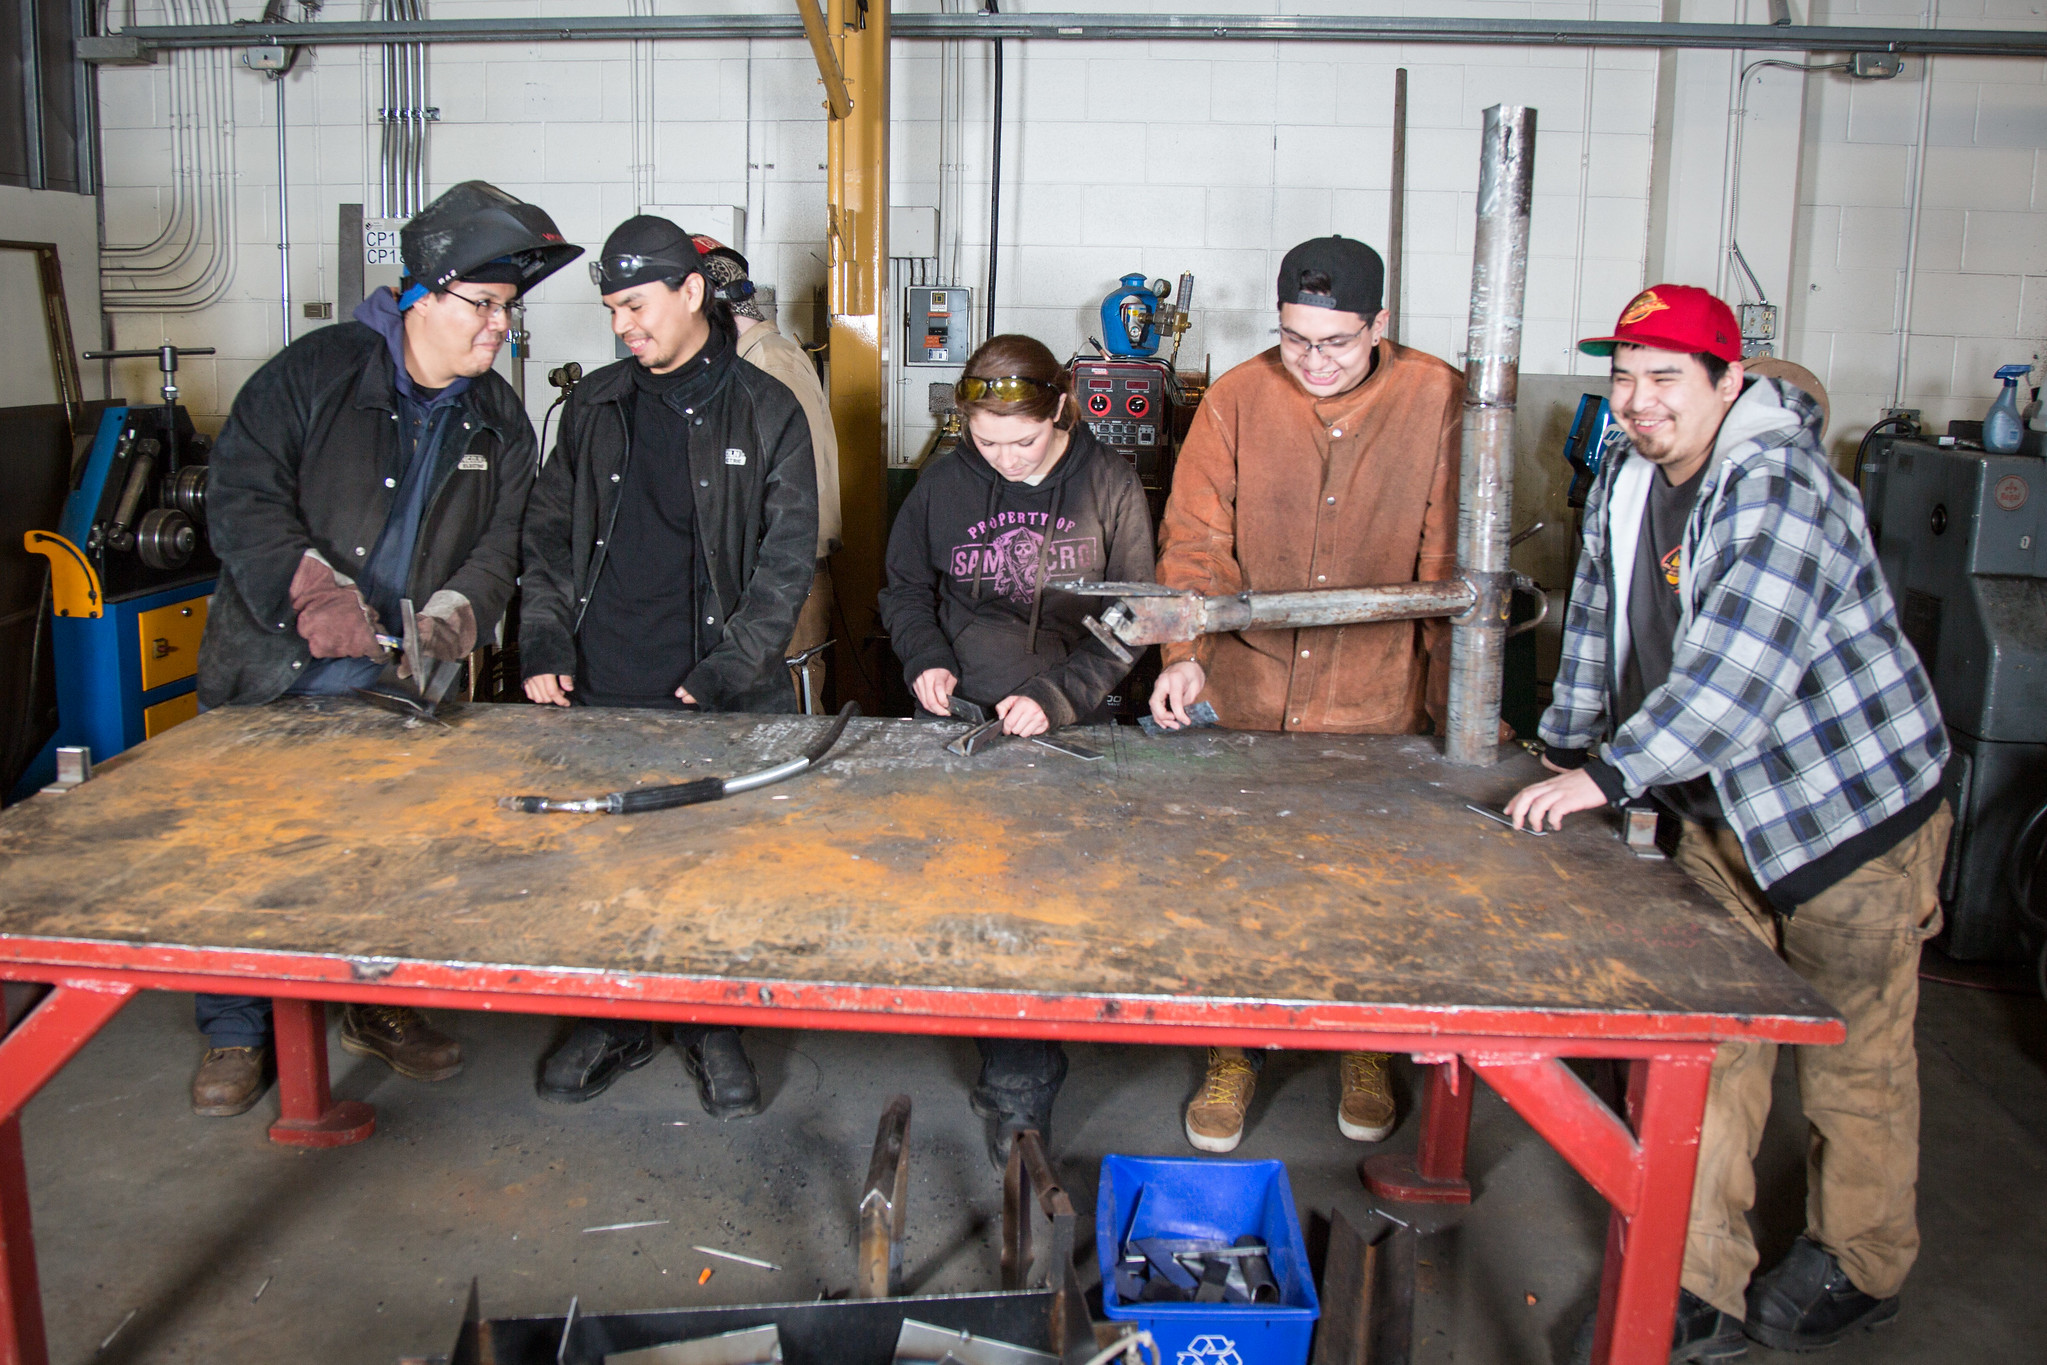 group of students around work bench